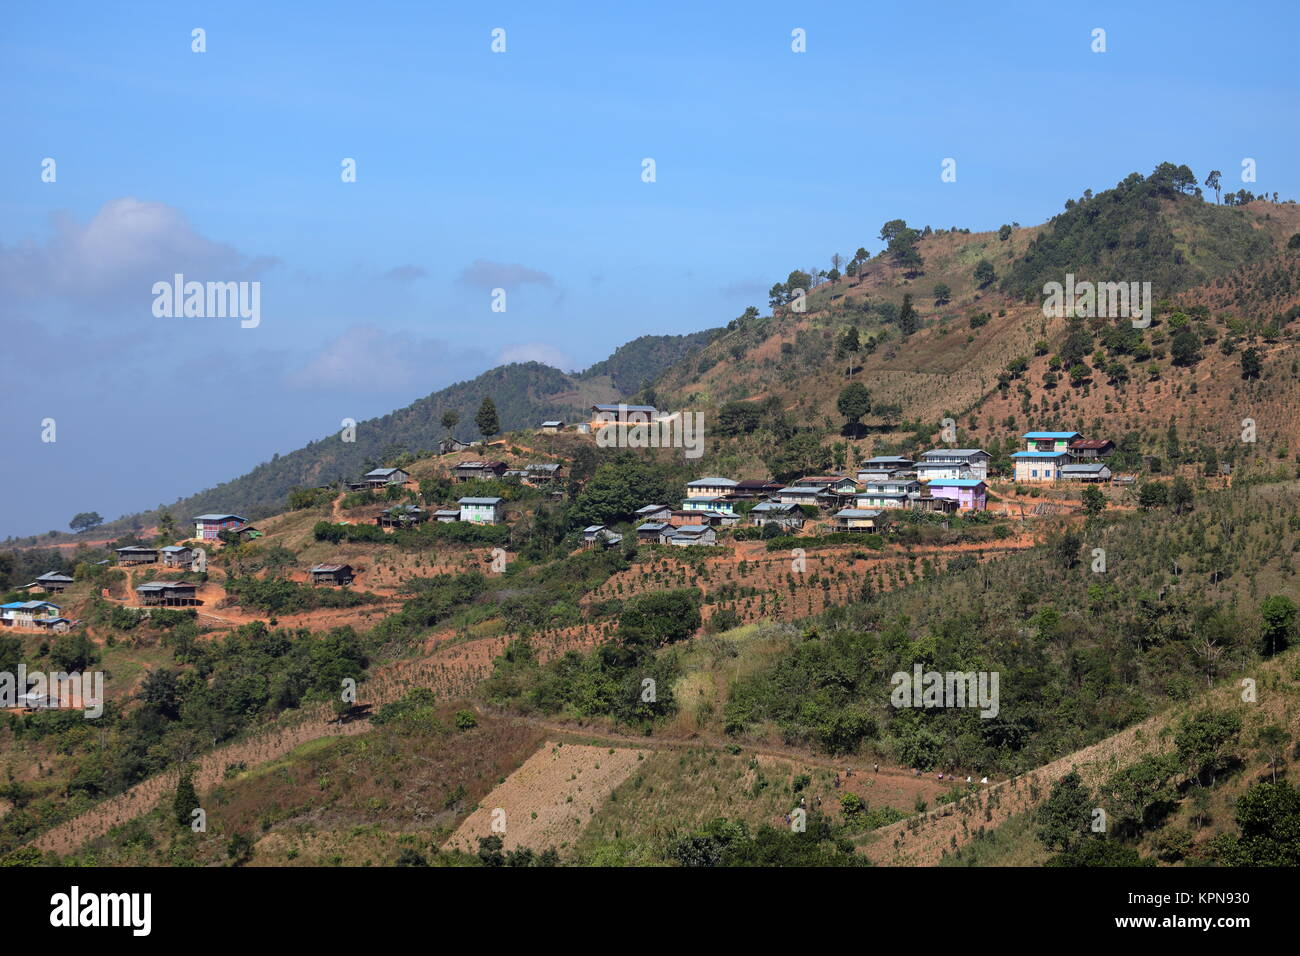 homes and villages in myanmar Stock Photo